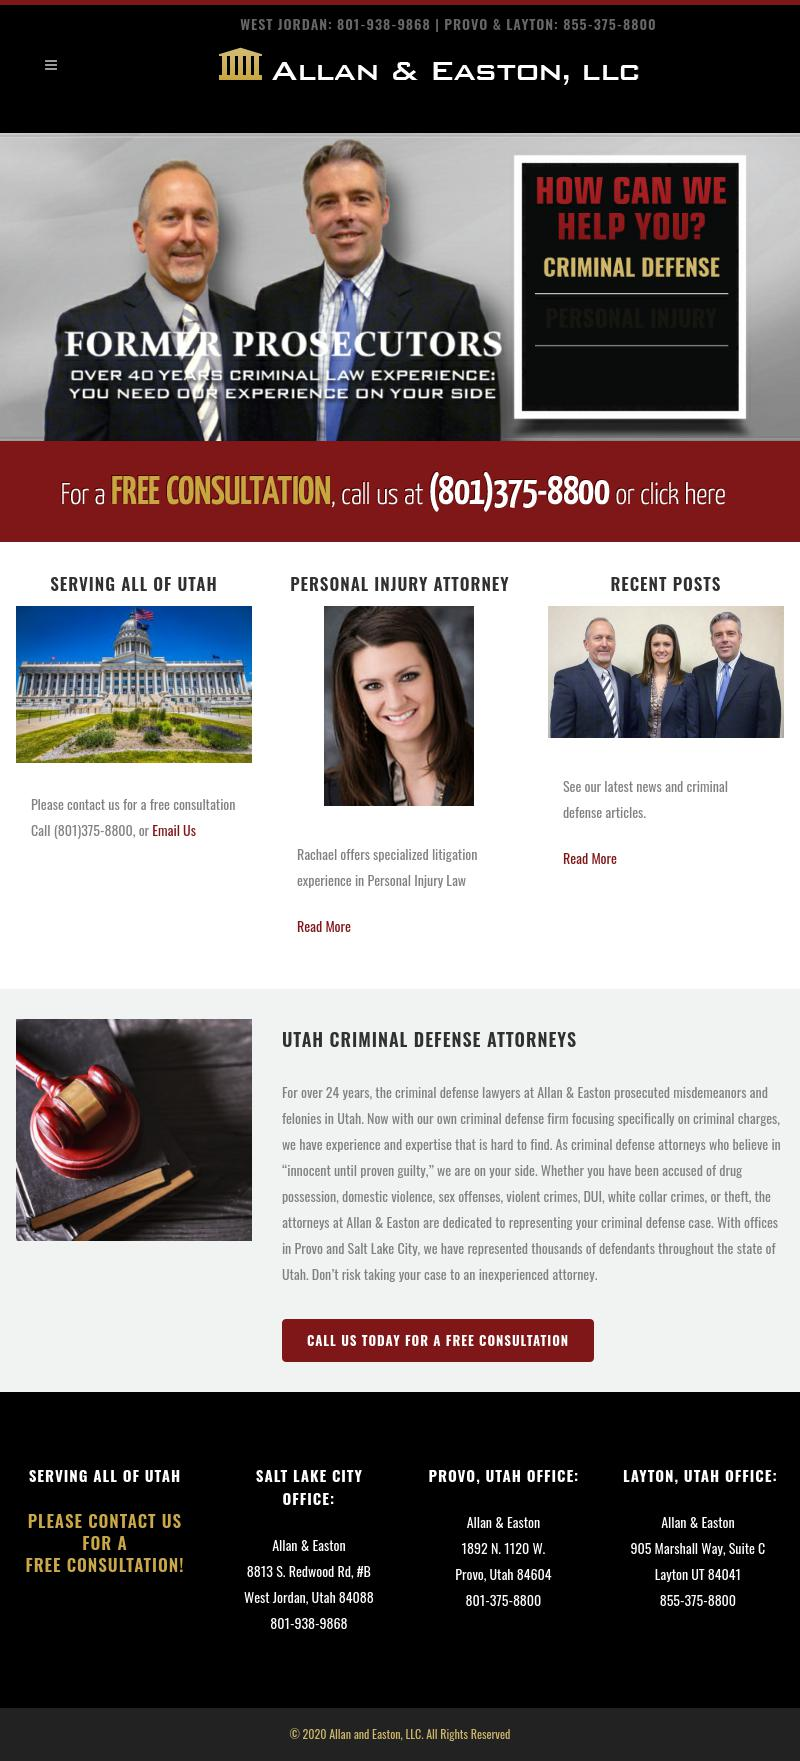 Allan & Easton LLC - Provo UT Lawyers